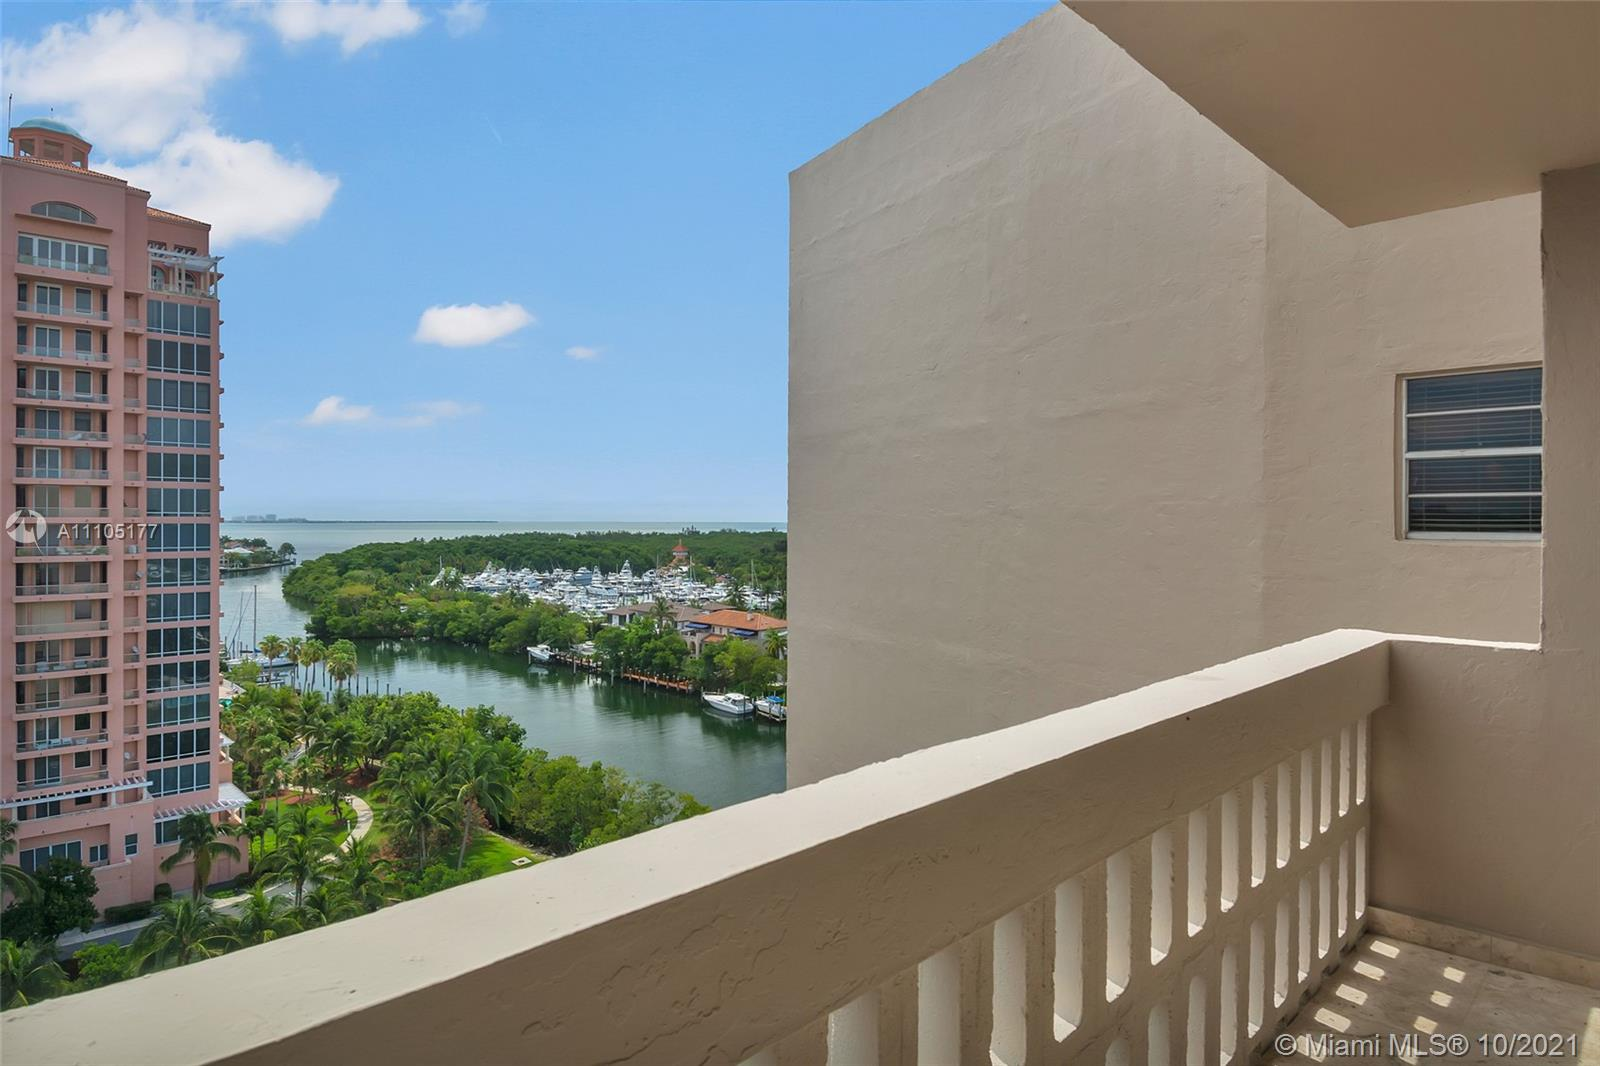 Gables Waterway #1222 - 90 Edgewater Dr #1222, Coral Gables, FL 33133